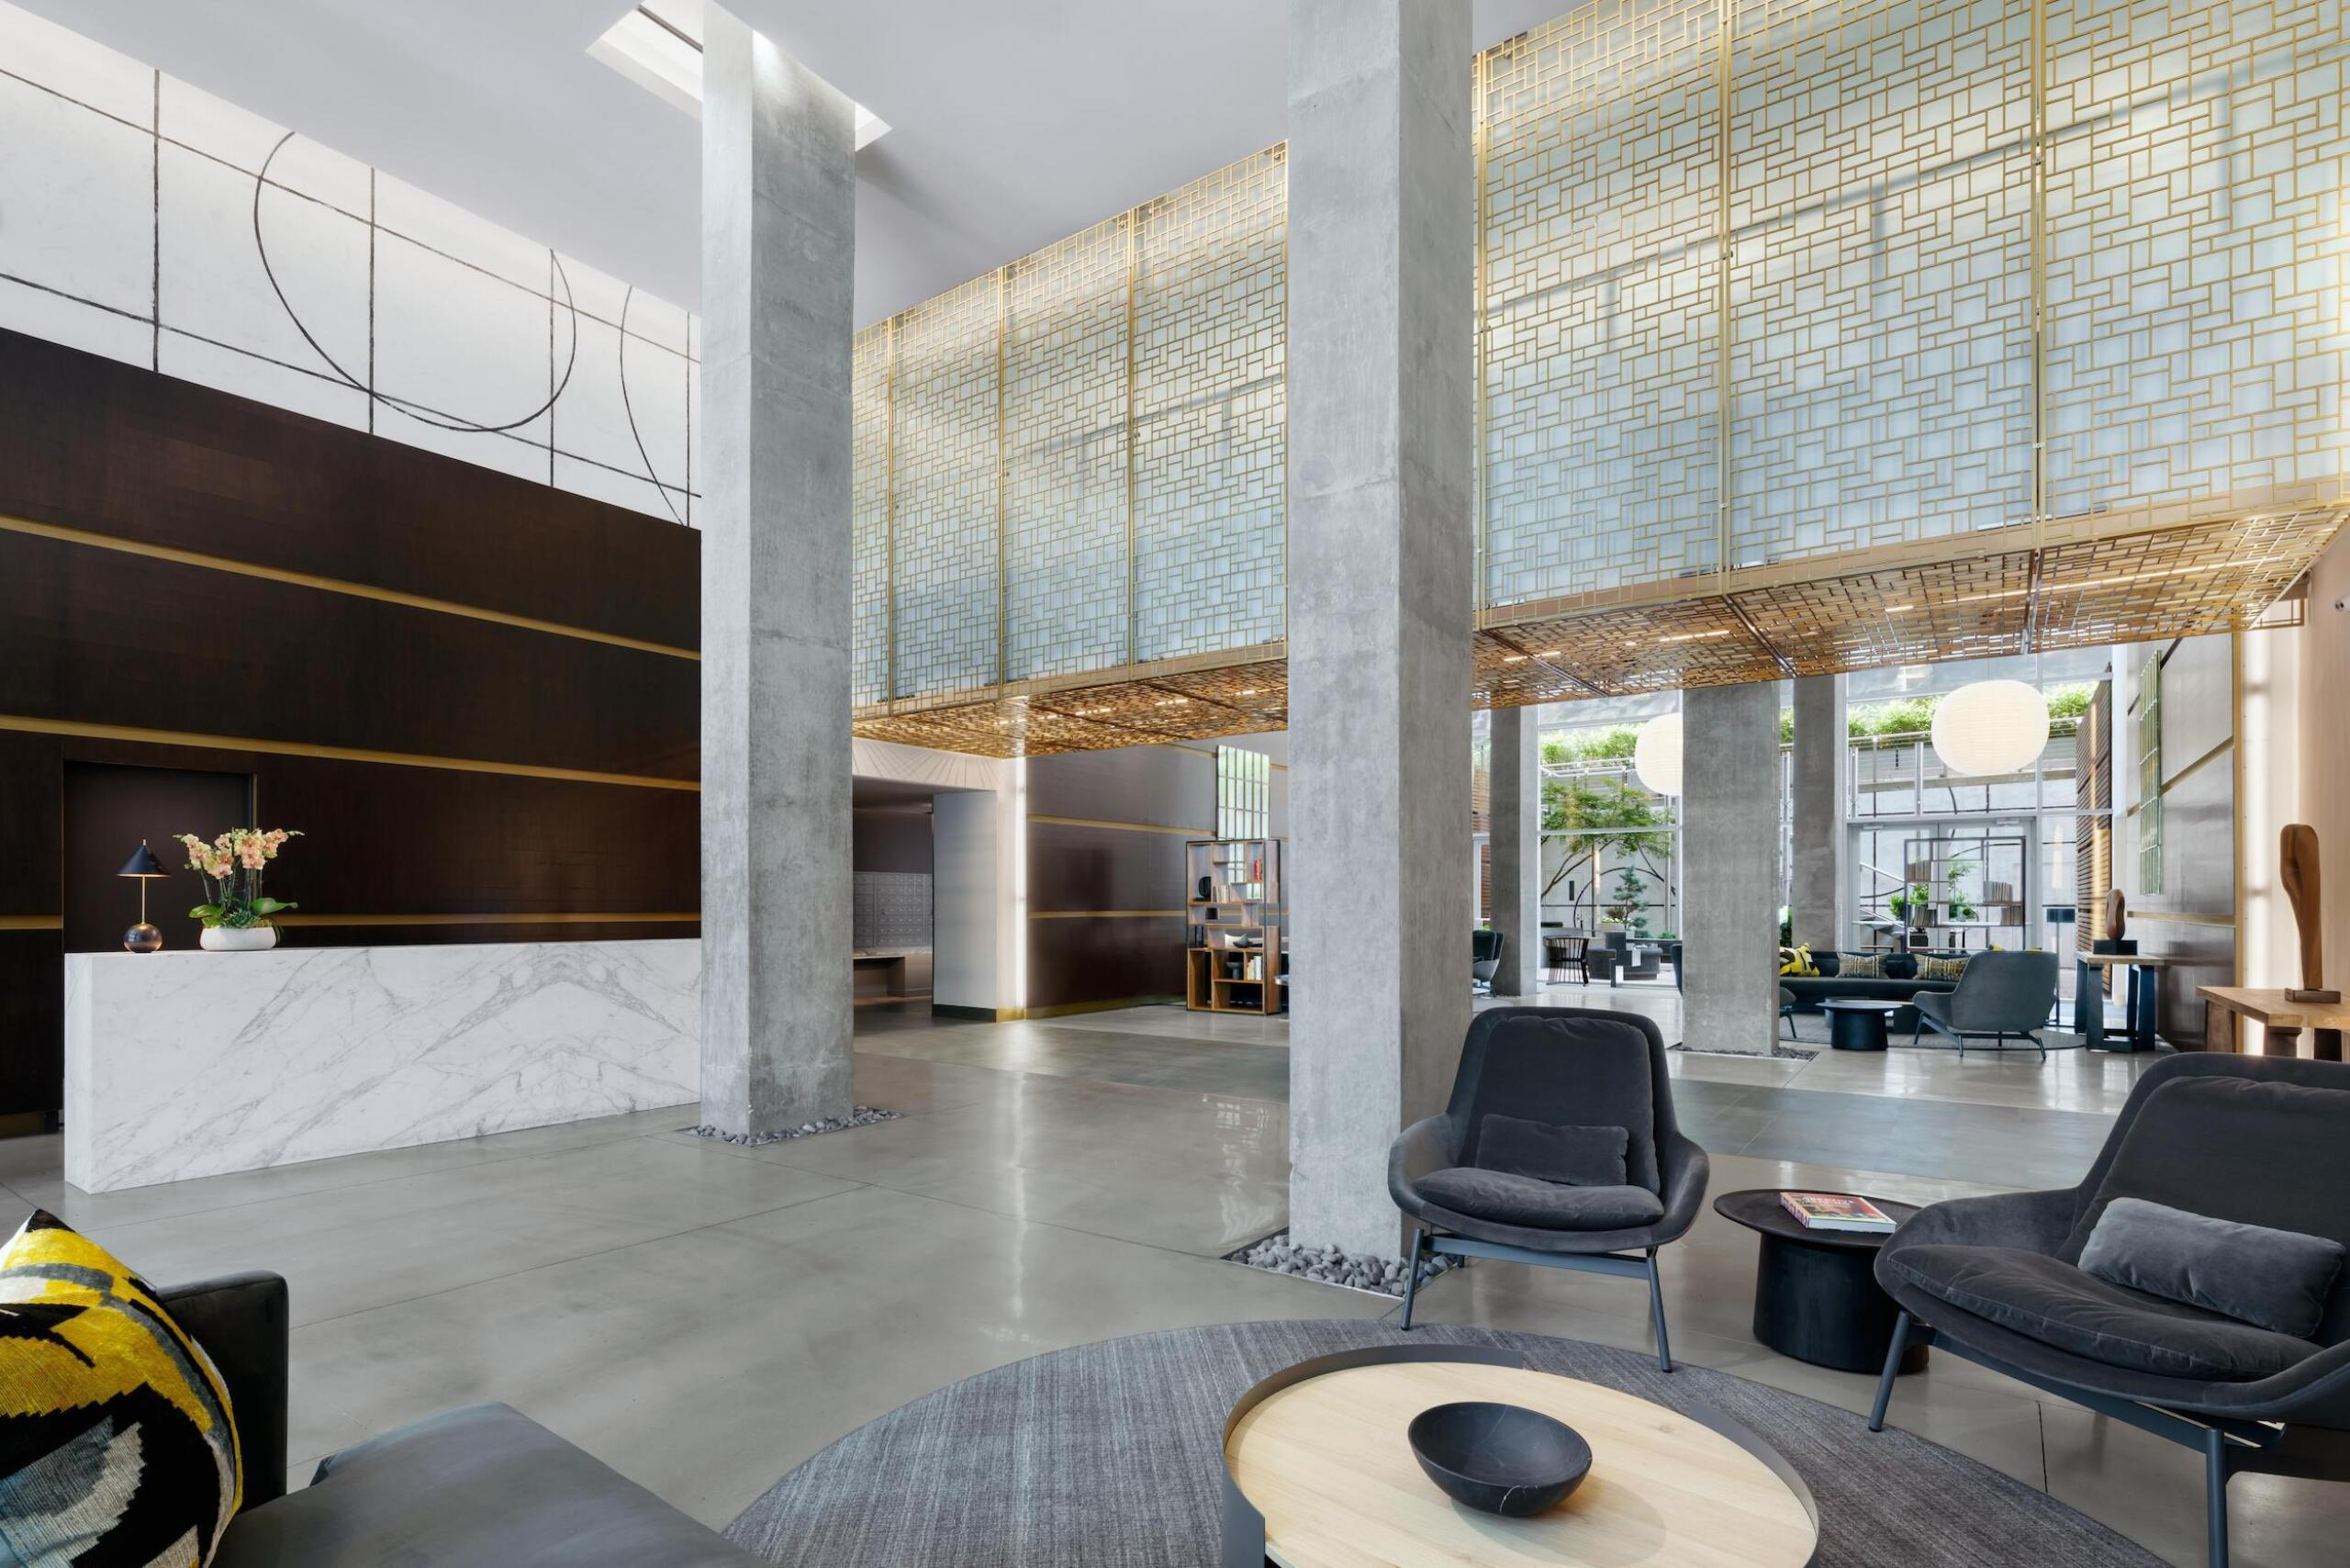 88 Leonard lobby with lounge area, concierge desk, and view of main entrance doors